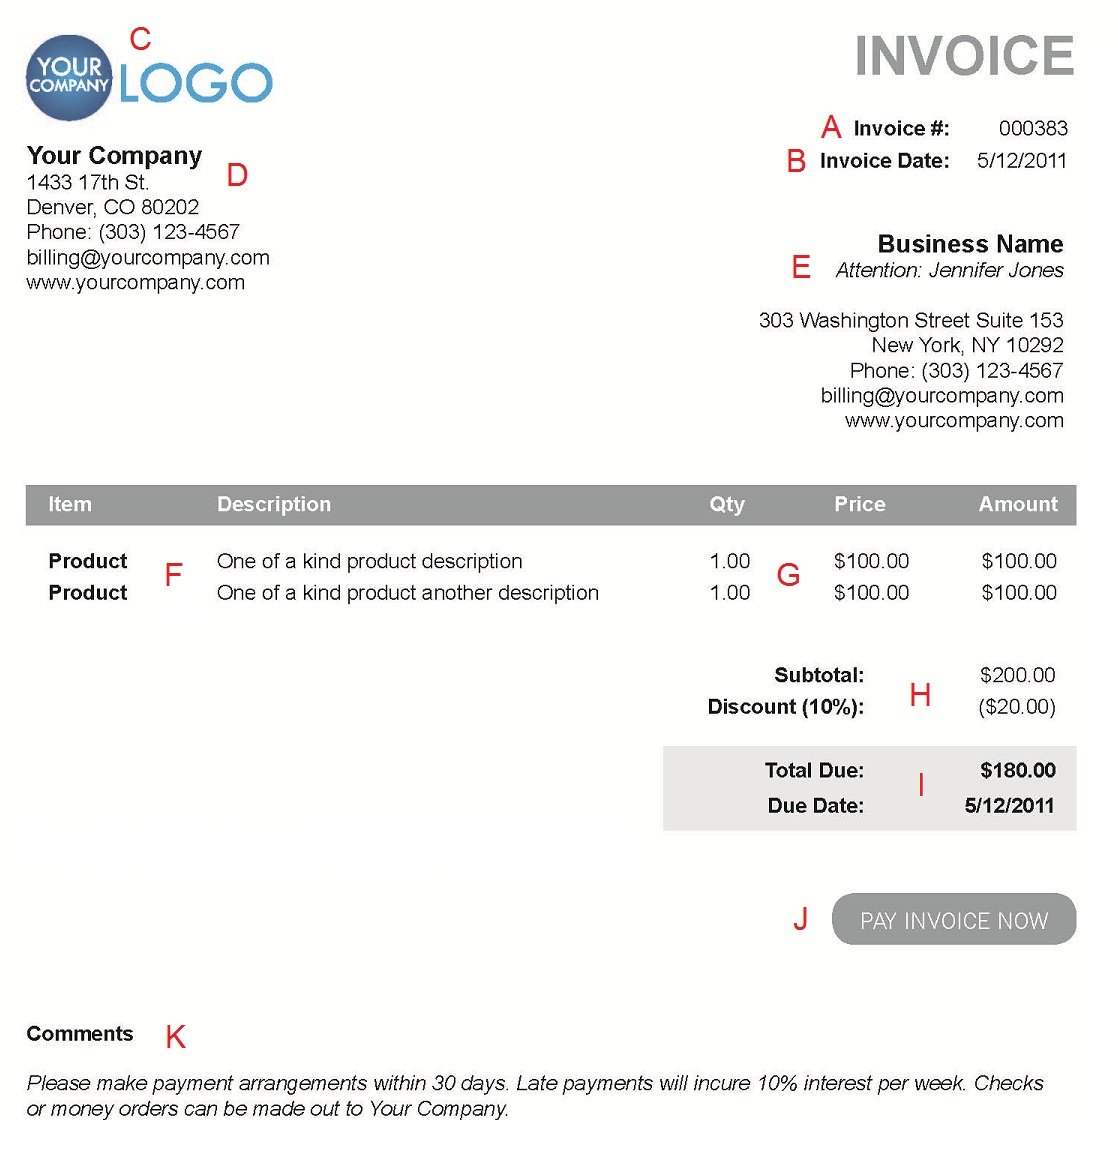 Occupyhistoryus  Marvelous The  Different Sections Of An Electronic Payment Invoice With Engaging A  With Beautiful Express Invoice Invoicing Software Also Musician Invoice Template In Addition How To Make An Invoice On Ebay And Upon Receipt Of Invoice As Well As The Invoice Additionally Freshbooks Invoicing From Paysimplecom With Occupyhistoryus  Engaging The  Different Sections Of An Electronic Payment Invoice With Beautiful A  And Marvelous Express Invoice Invoicing Software Also Musician Invoice Template In Addition How To Make An Invoice On Ebay From Paysimplecom